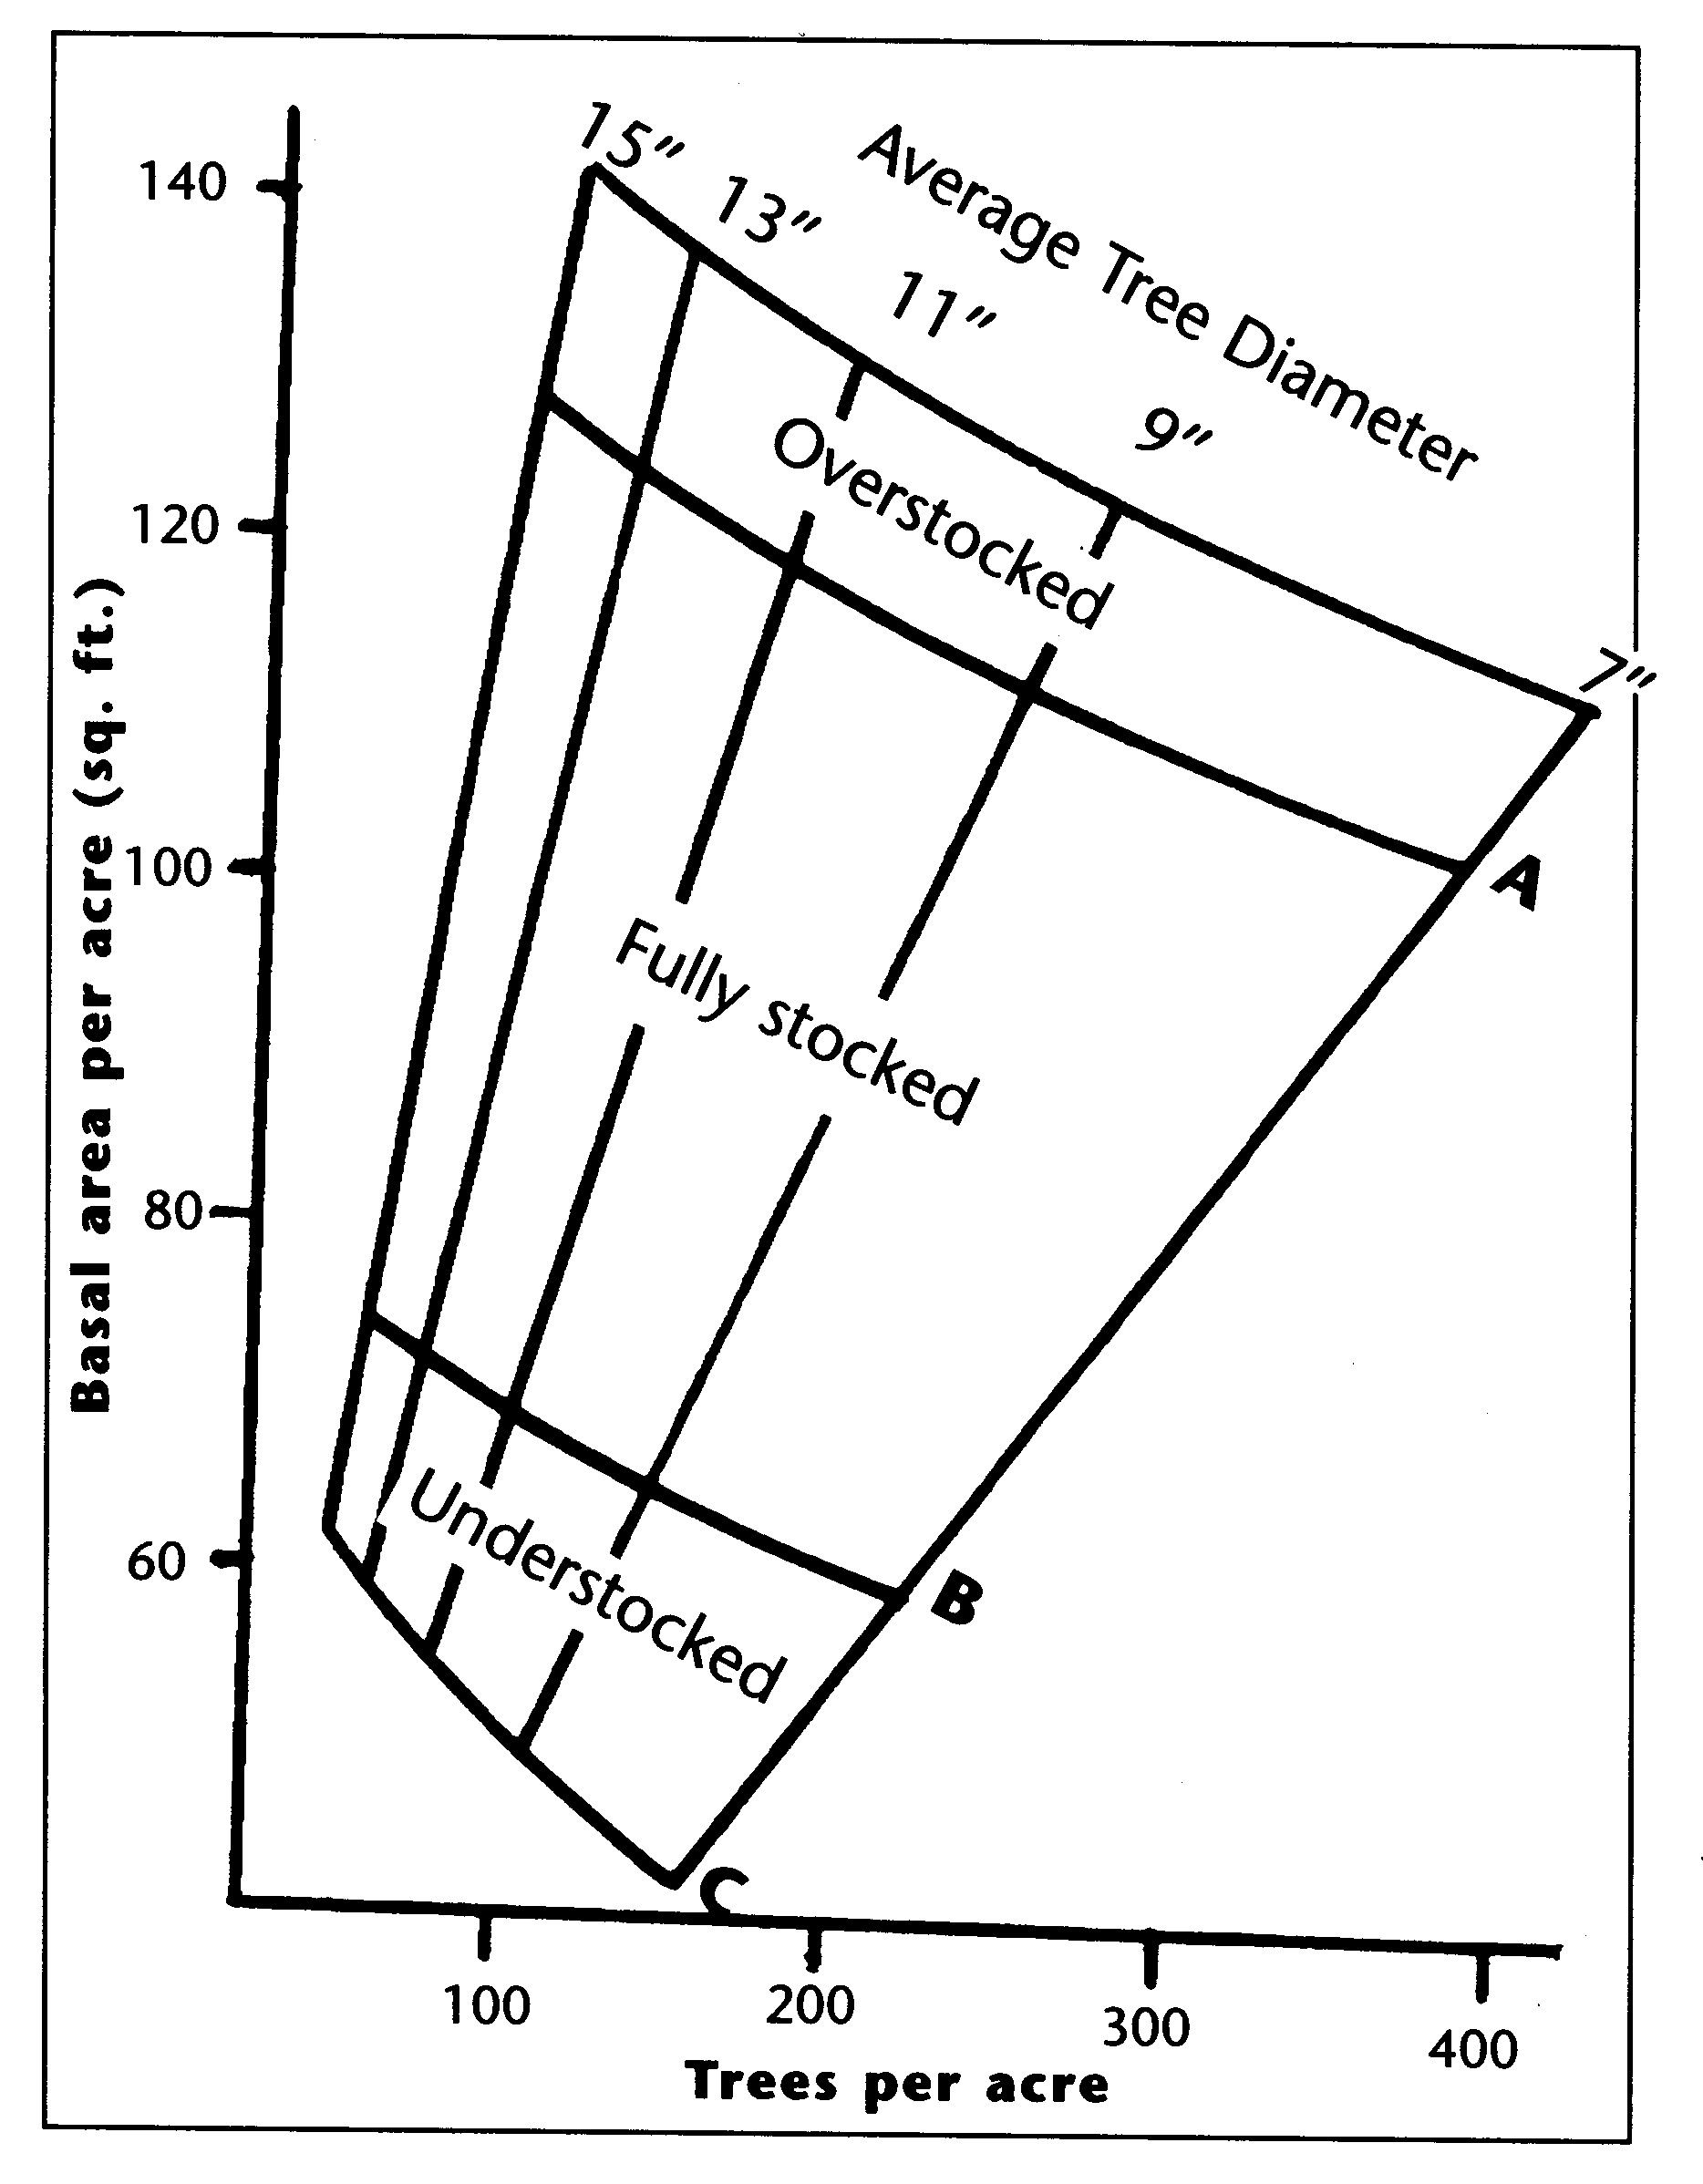 Understanding Forest Basal Area This Diagrams Shows The Annual Rings Of A Tree Trunk